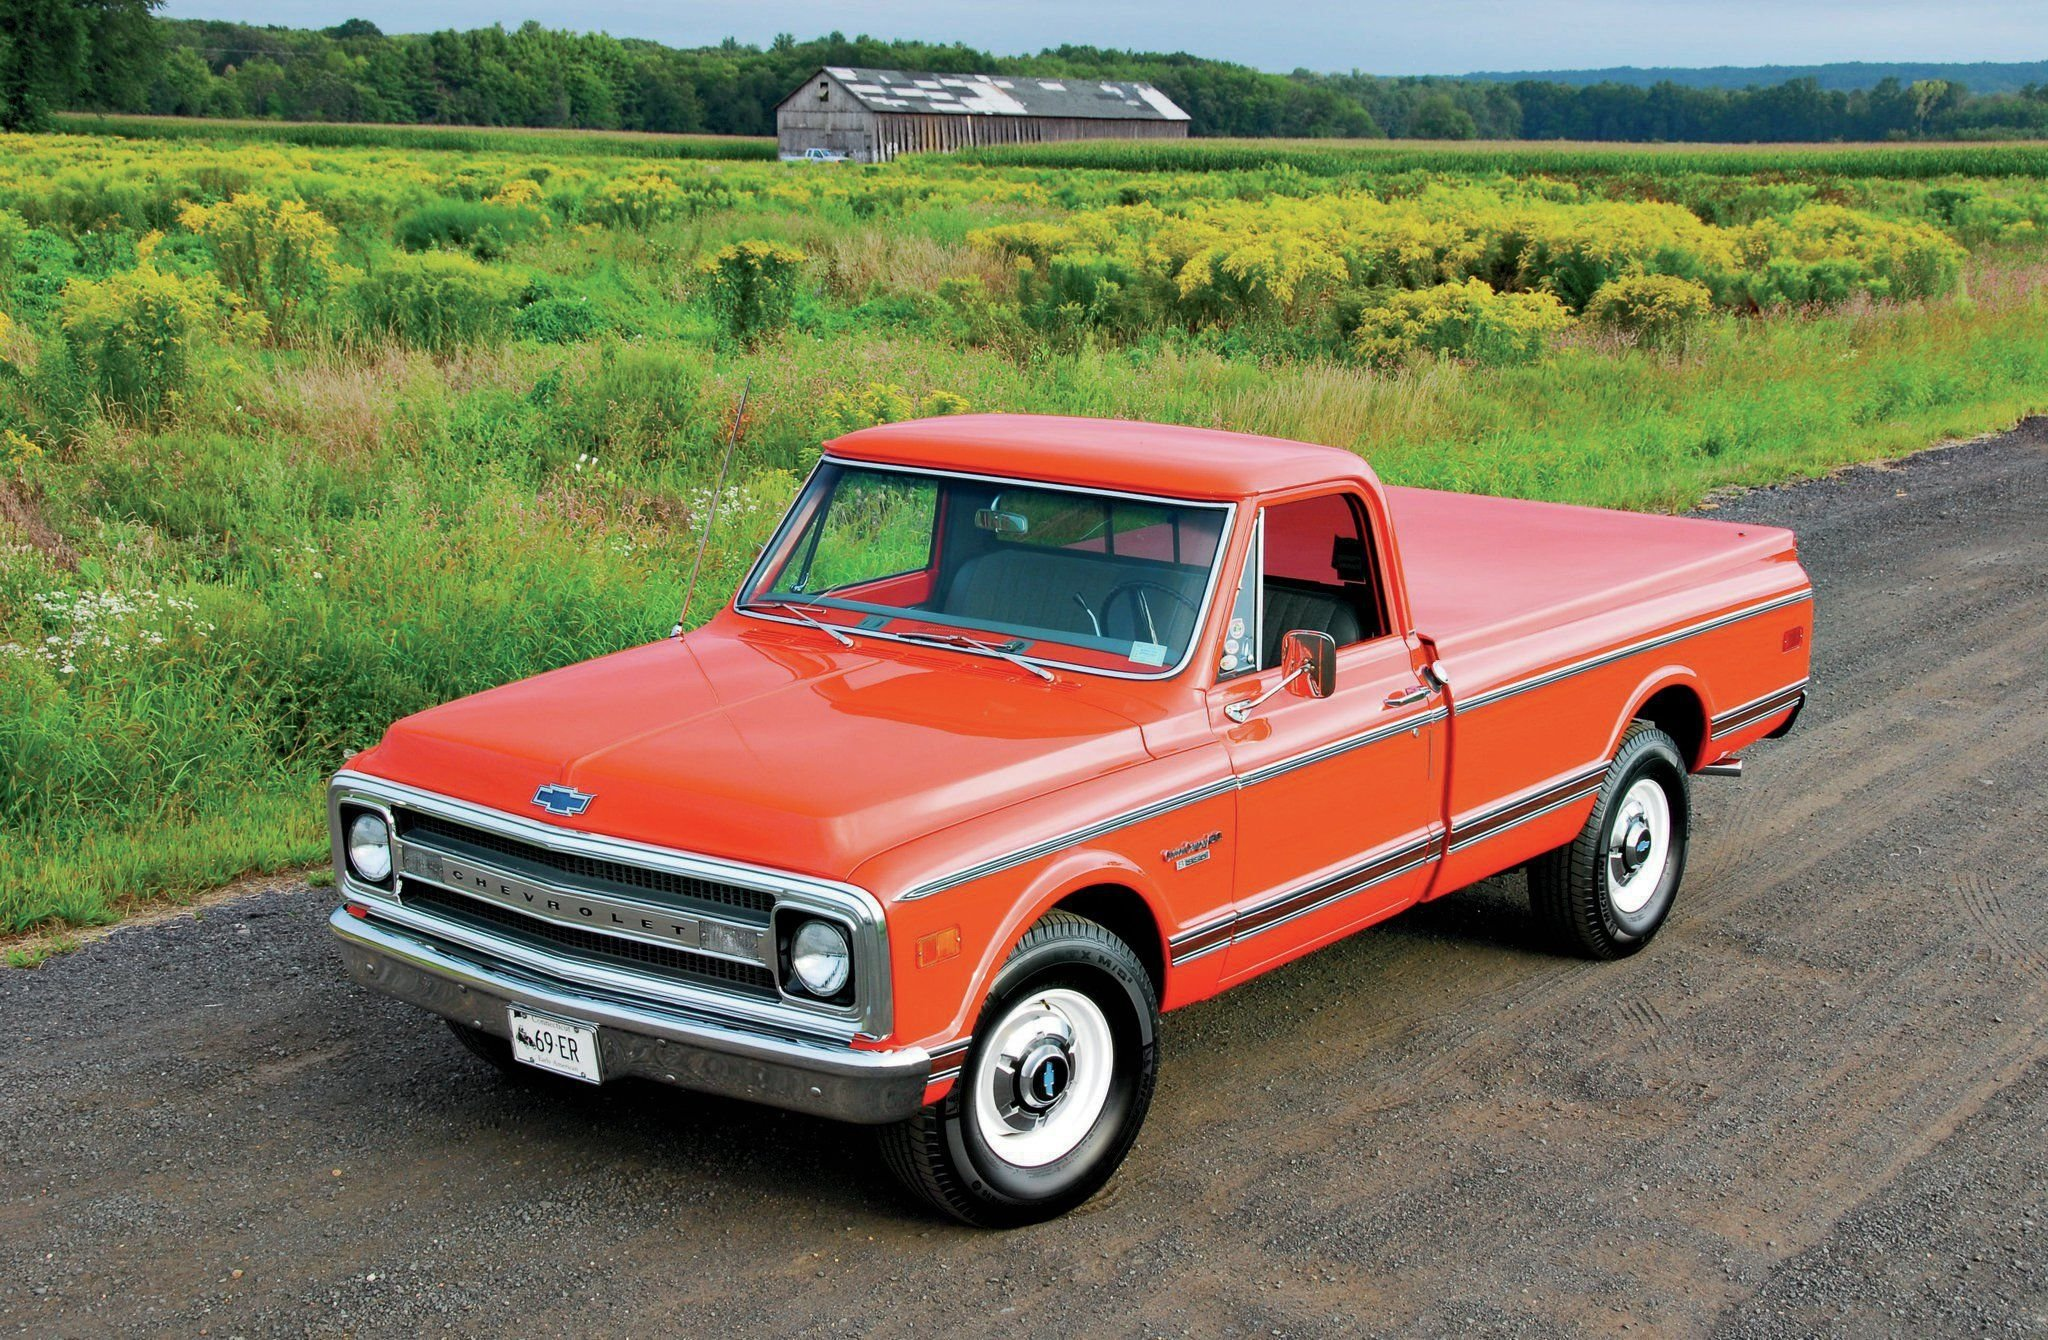 1969 Chevrolet C-20 Pickup-02 wallpaper